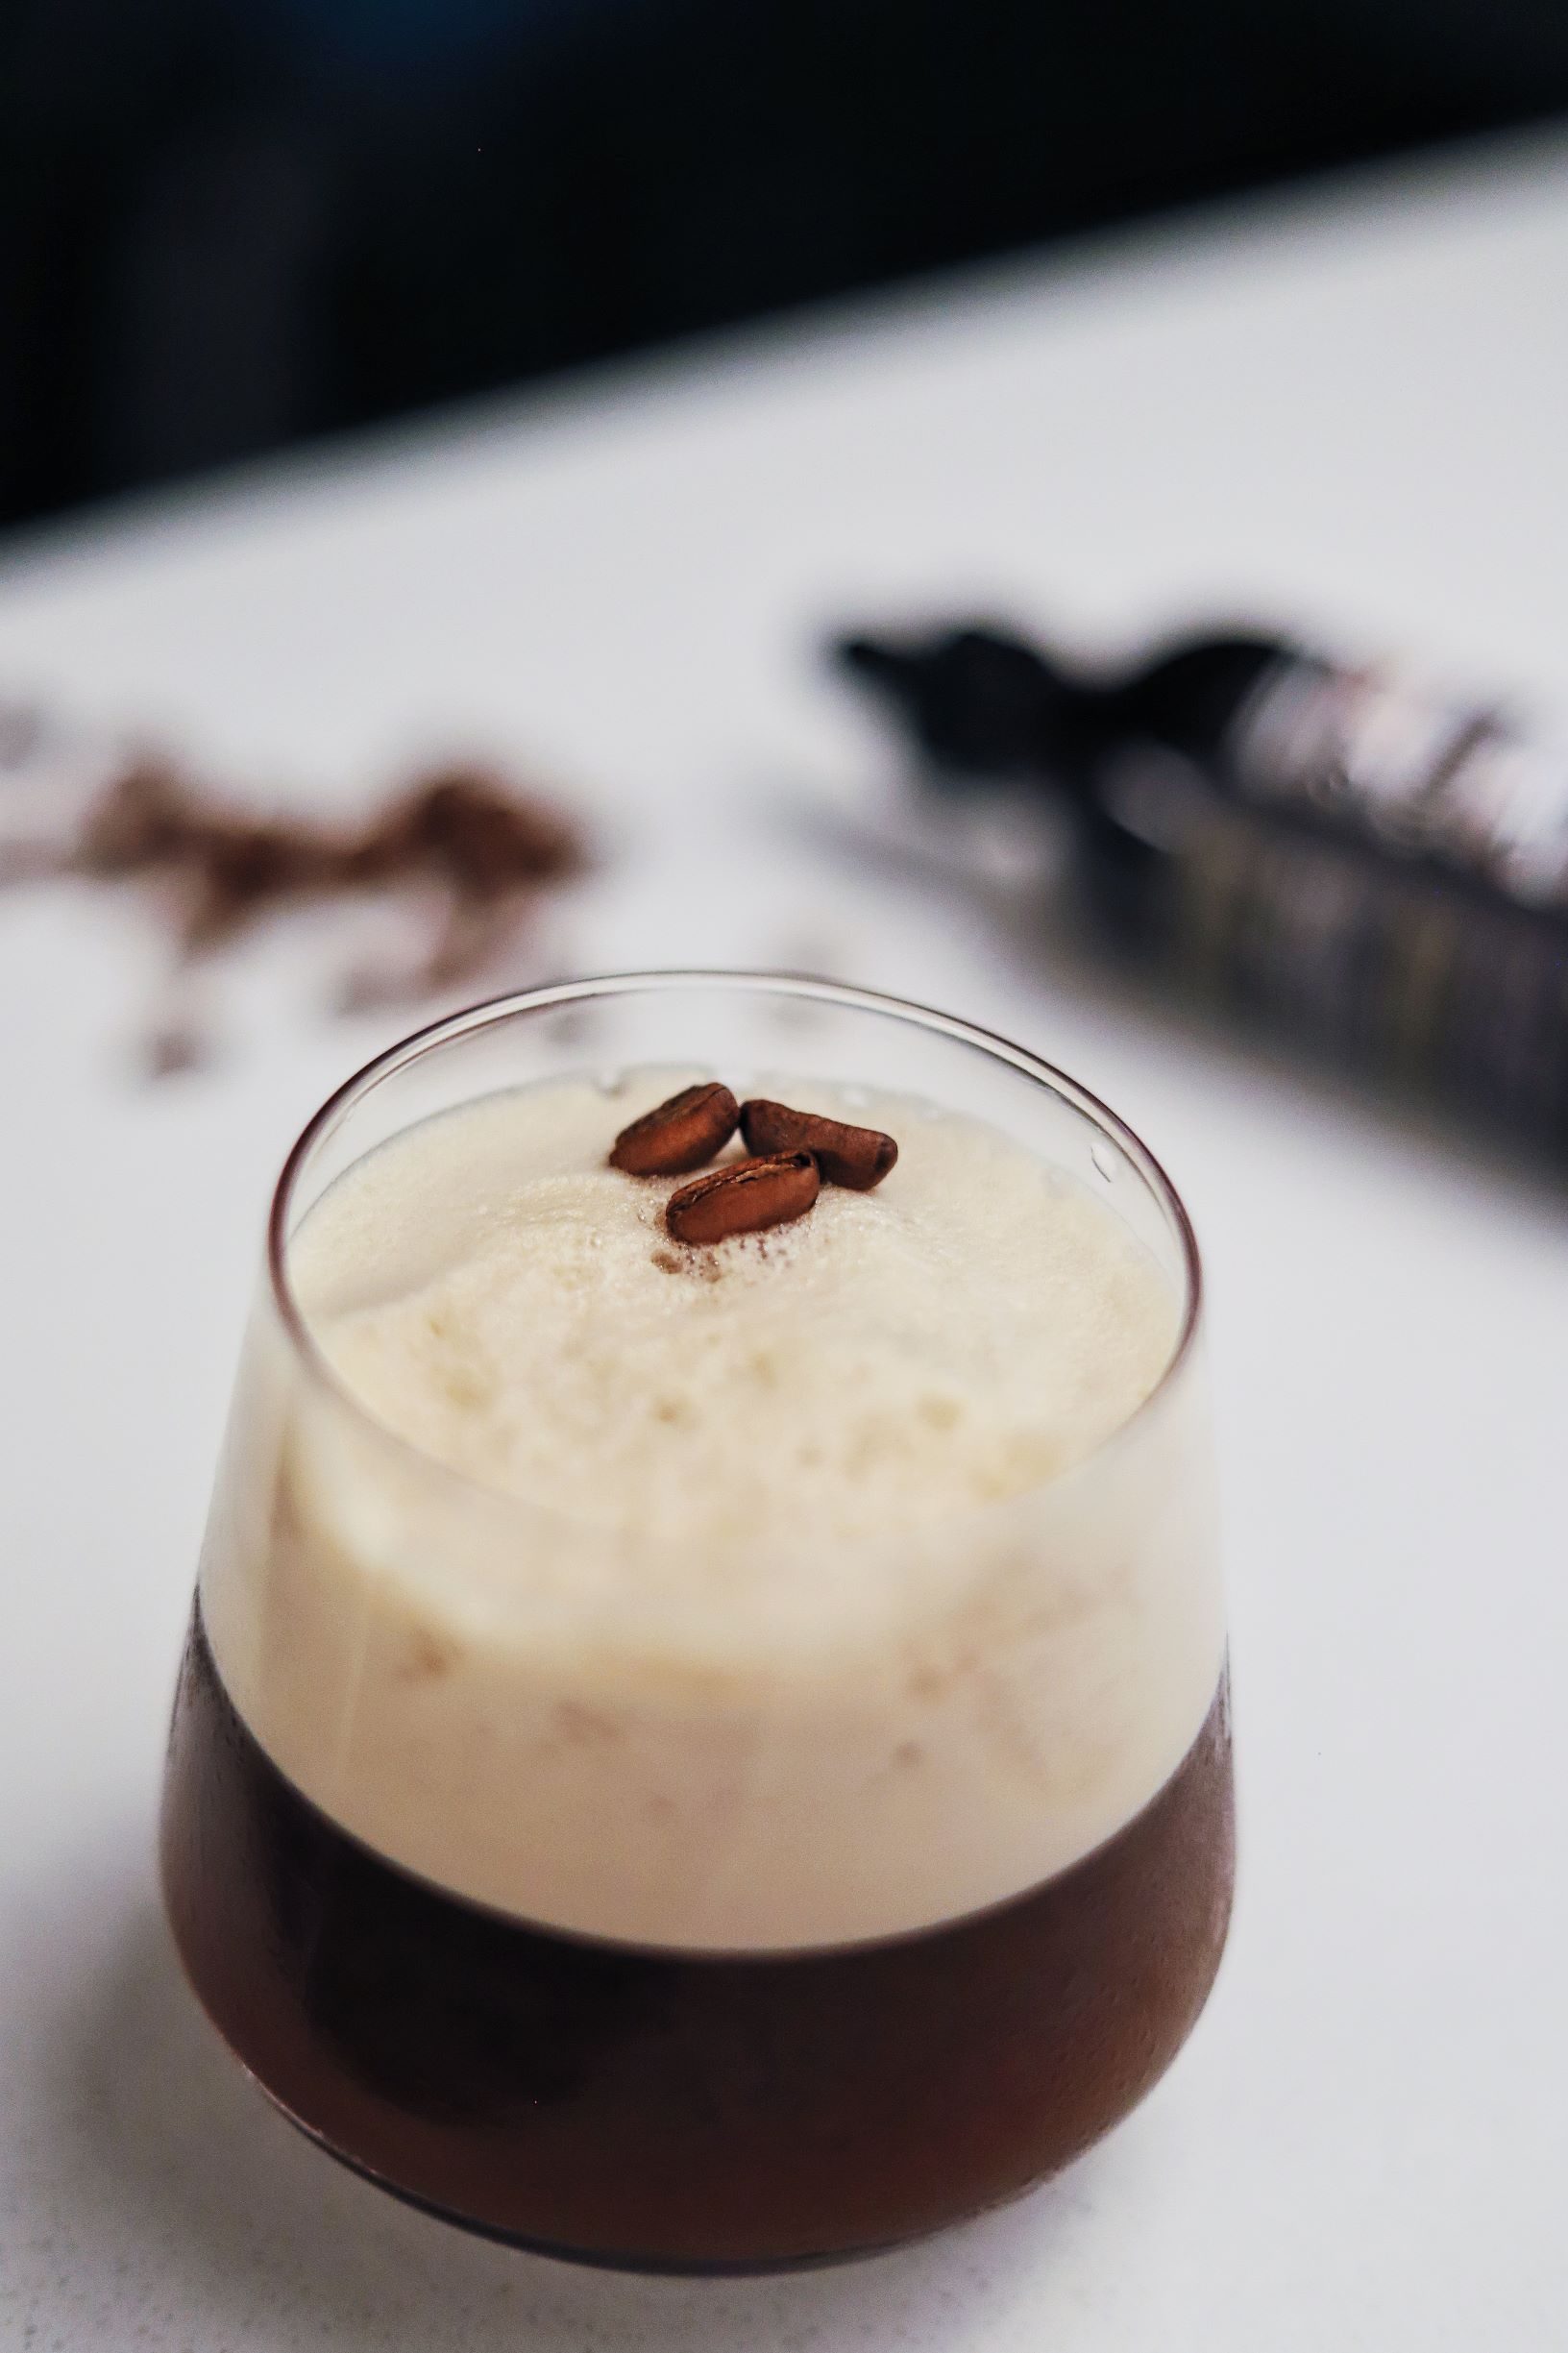 LeClair Organics Coffee Vancouver, Liberica Coffee Cocktail using vancouver whisky and Bittered Sling malagasy chocolate bitters